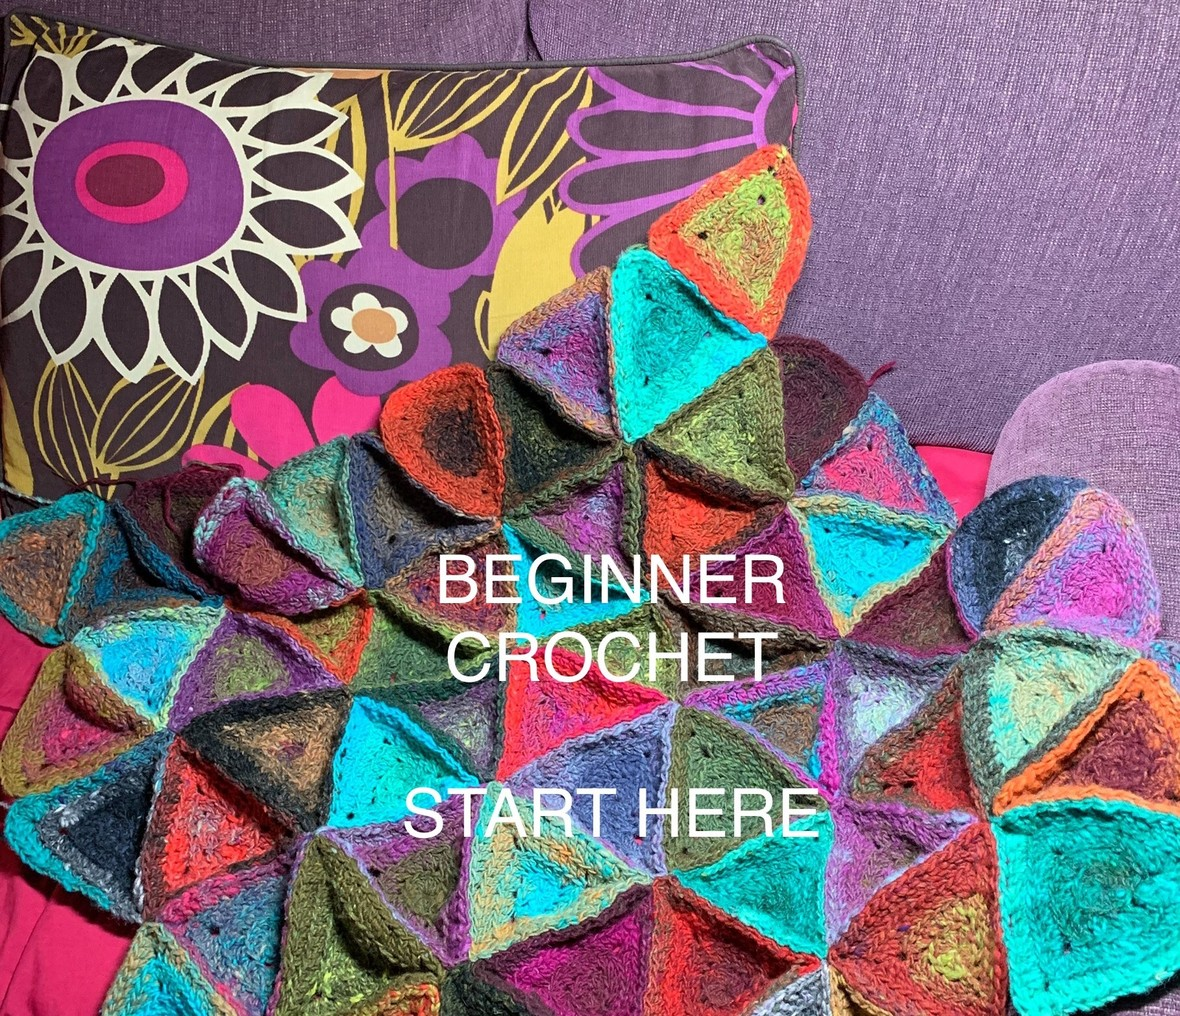 TLD.CROCHET.CHICAGO.SUBURBAN.SCHOOL.LEARN.TO.CROCHET.NEAR.ME.CHICAGO.SCHOOL.WEAVING.YARN.SHOP